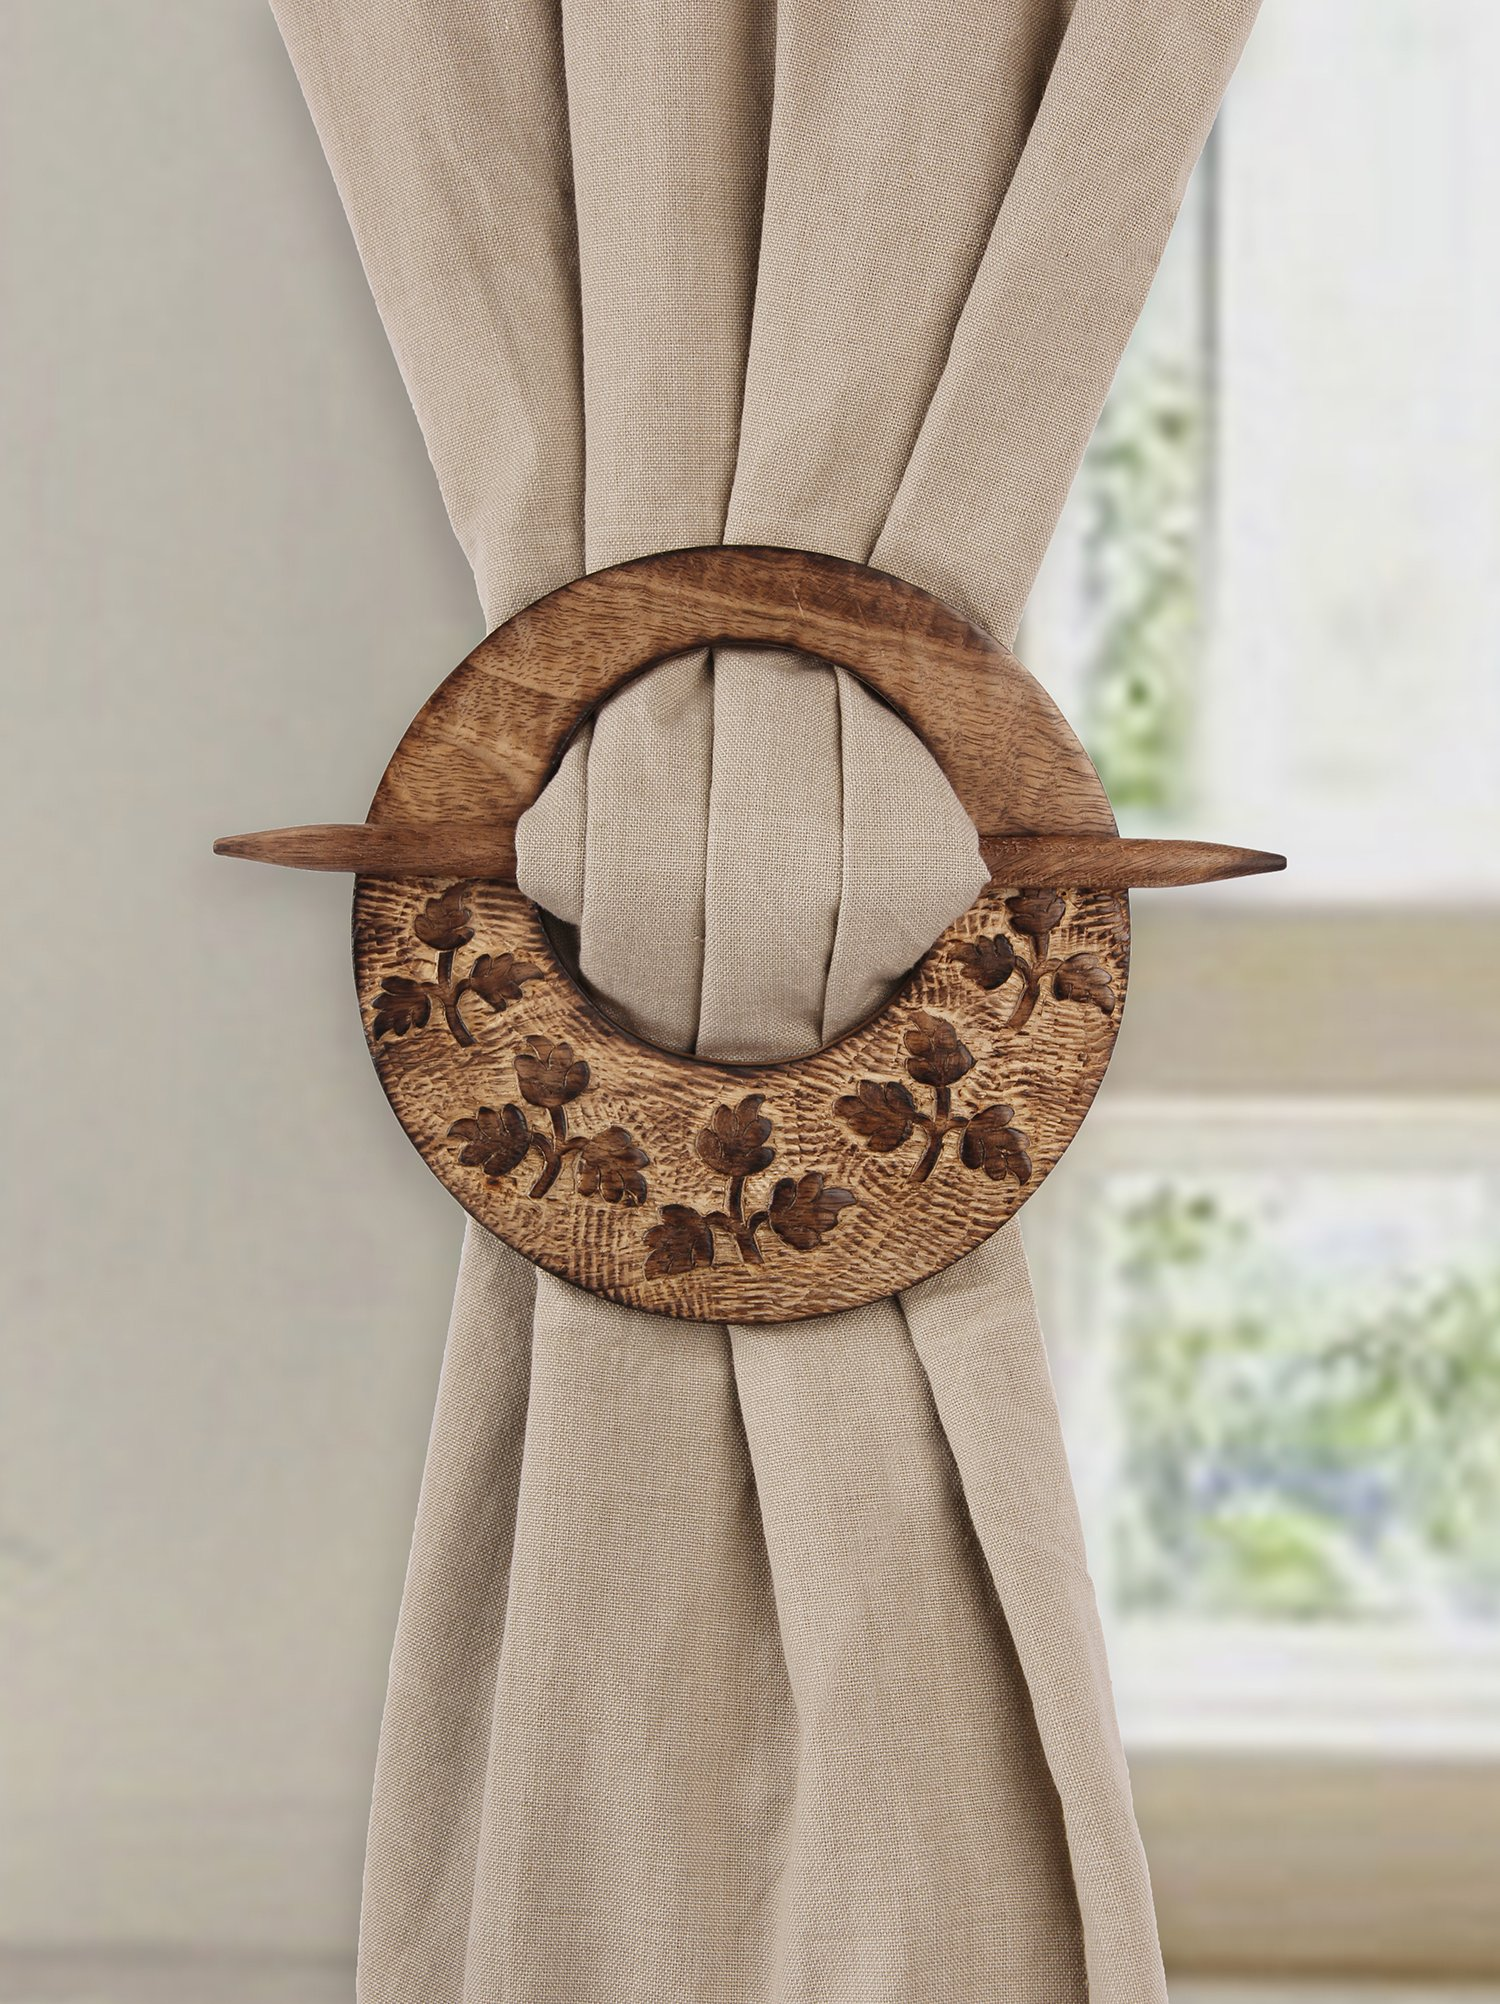 Wooden Hand Carved Curtain Tiebacks Holdbacks for Draperies Set of 2 Window Treatment Drape Binds Home Office Decor - Aheli